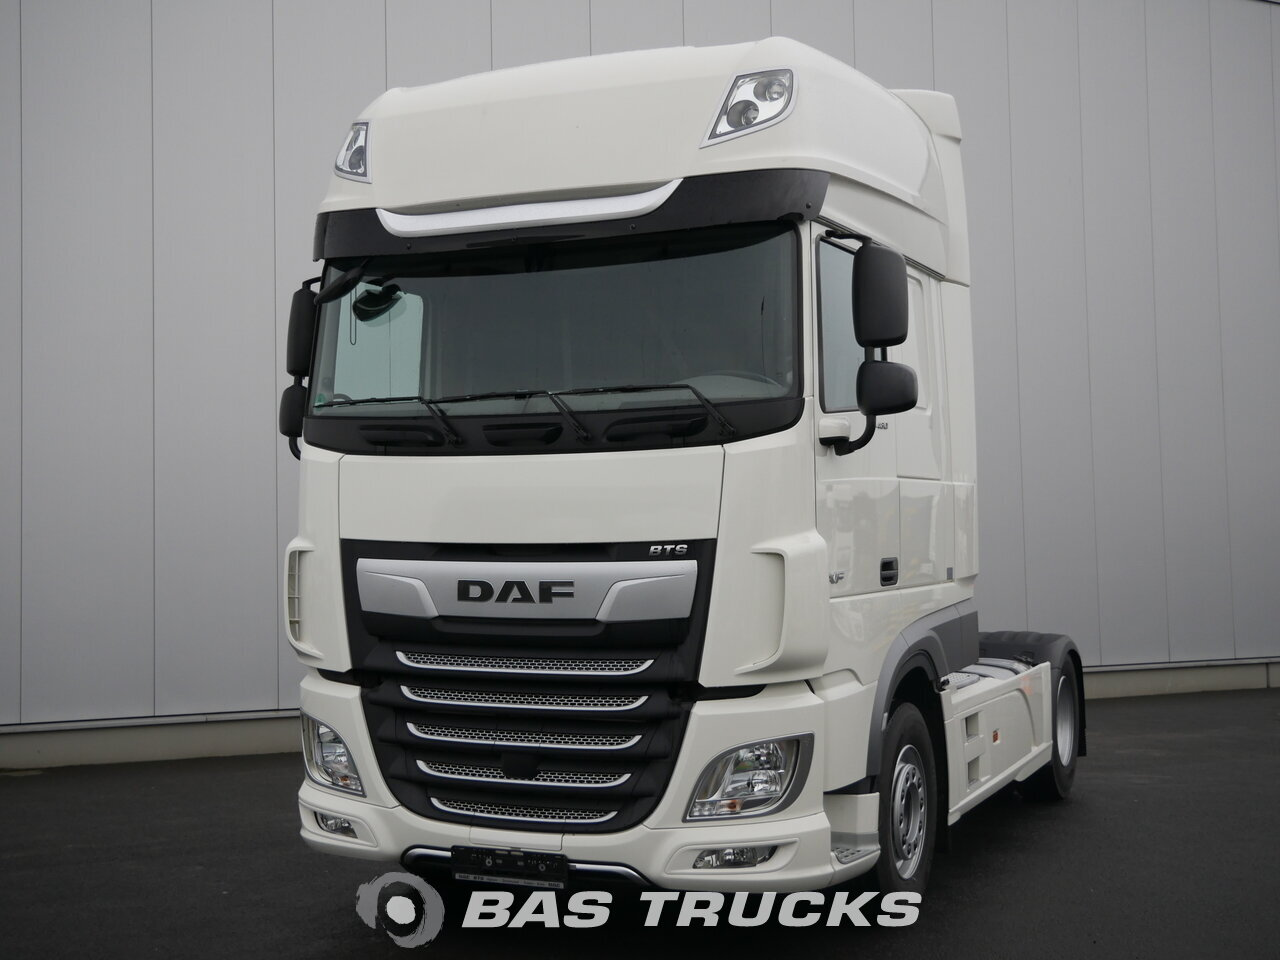 For sale at BAS Trucks: DAF XF 480 SSC 4X2 07/2017